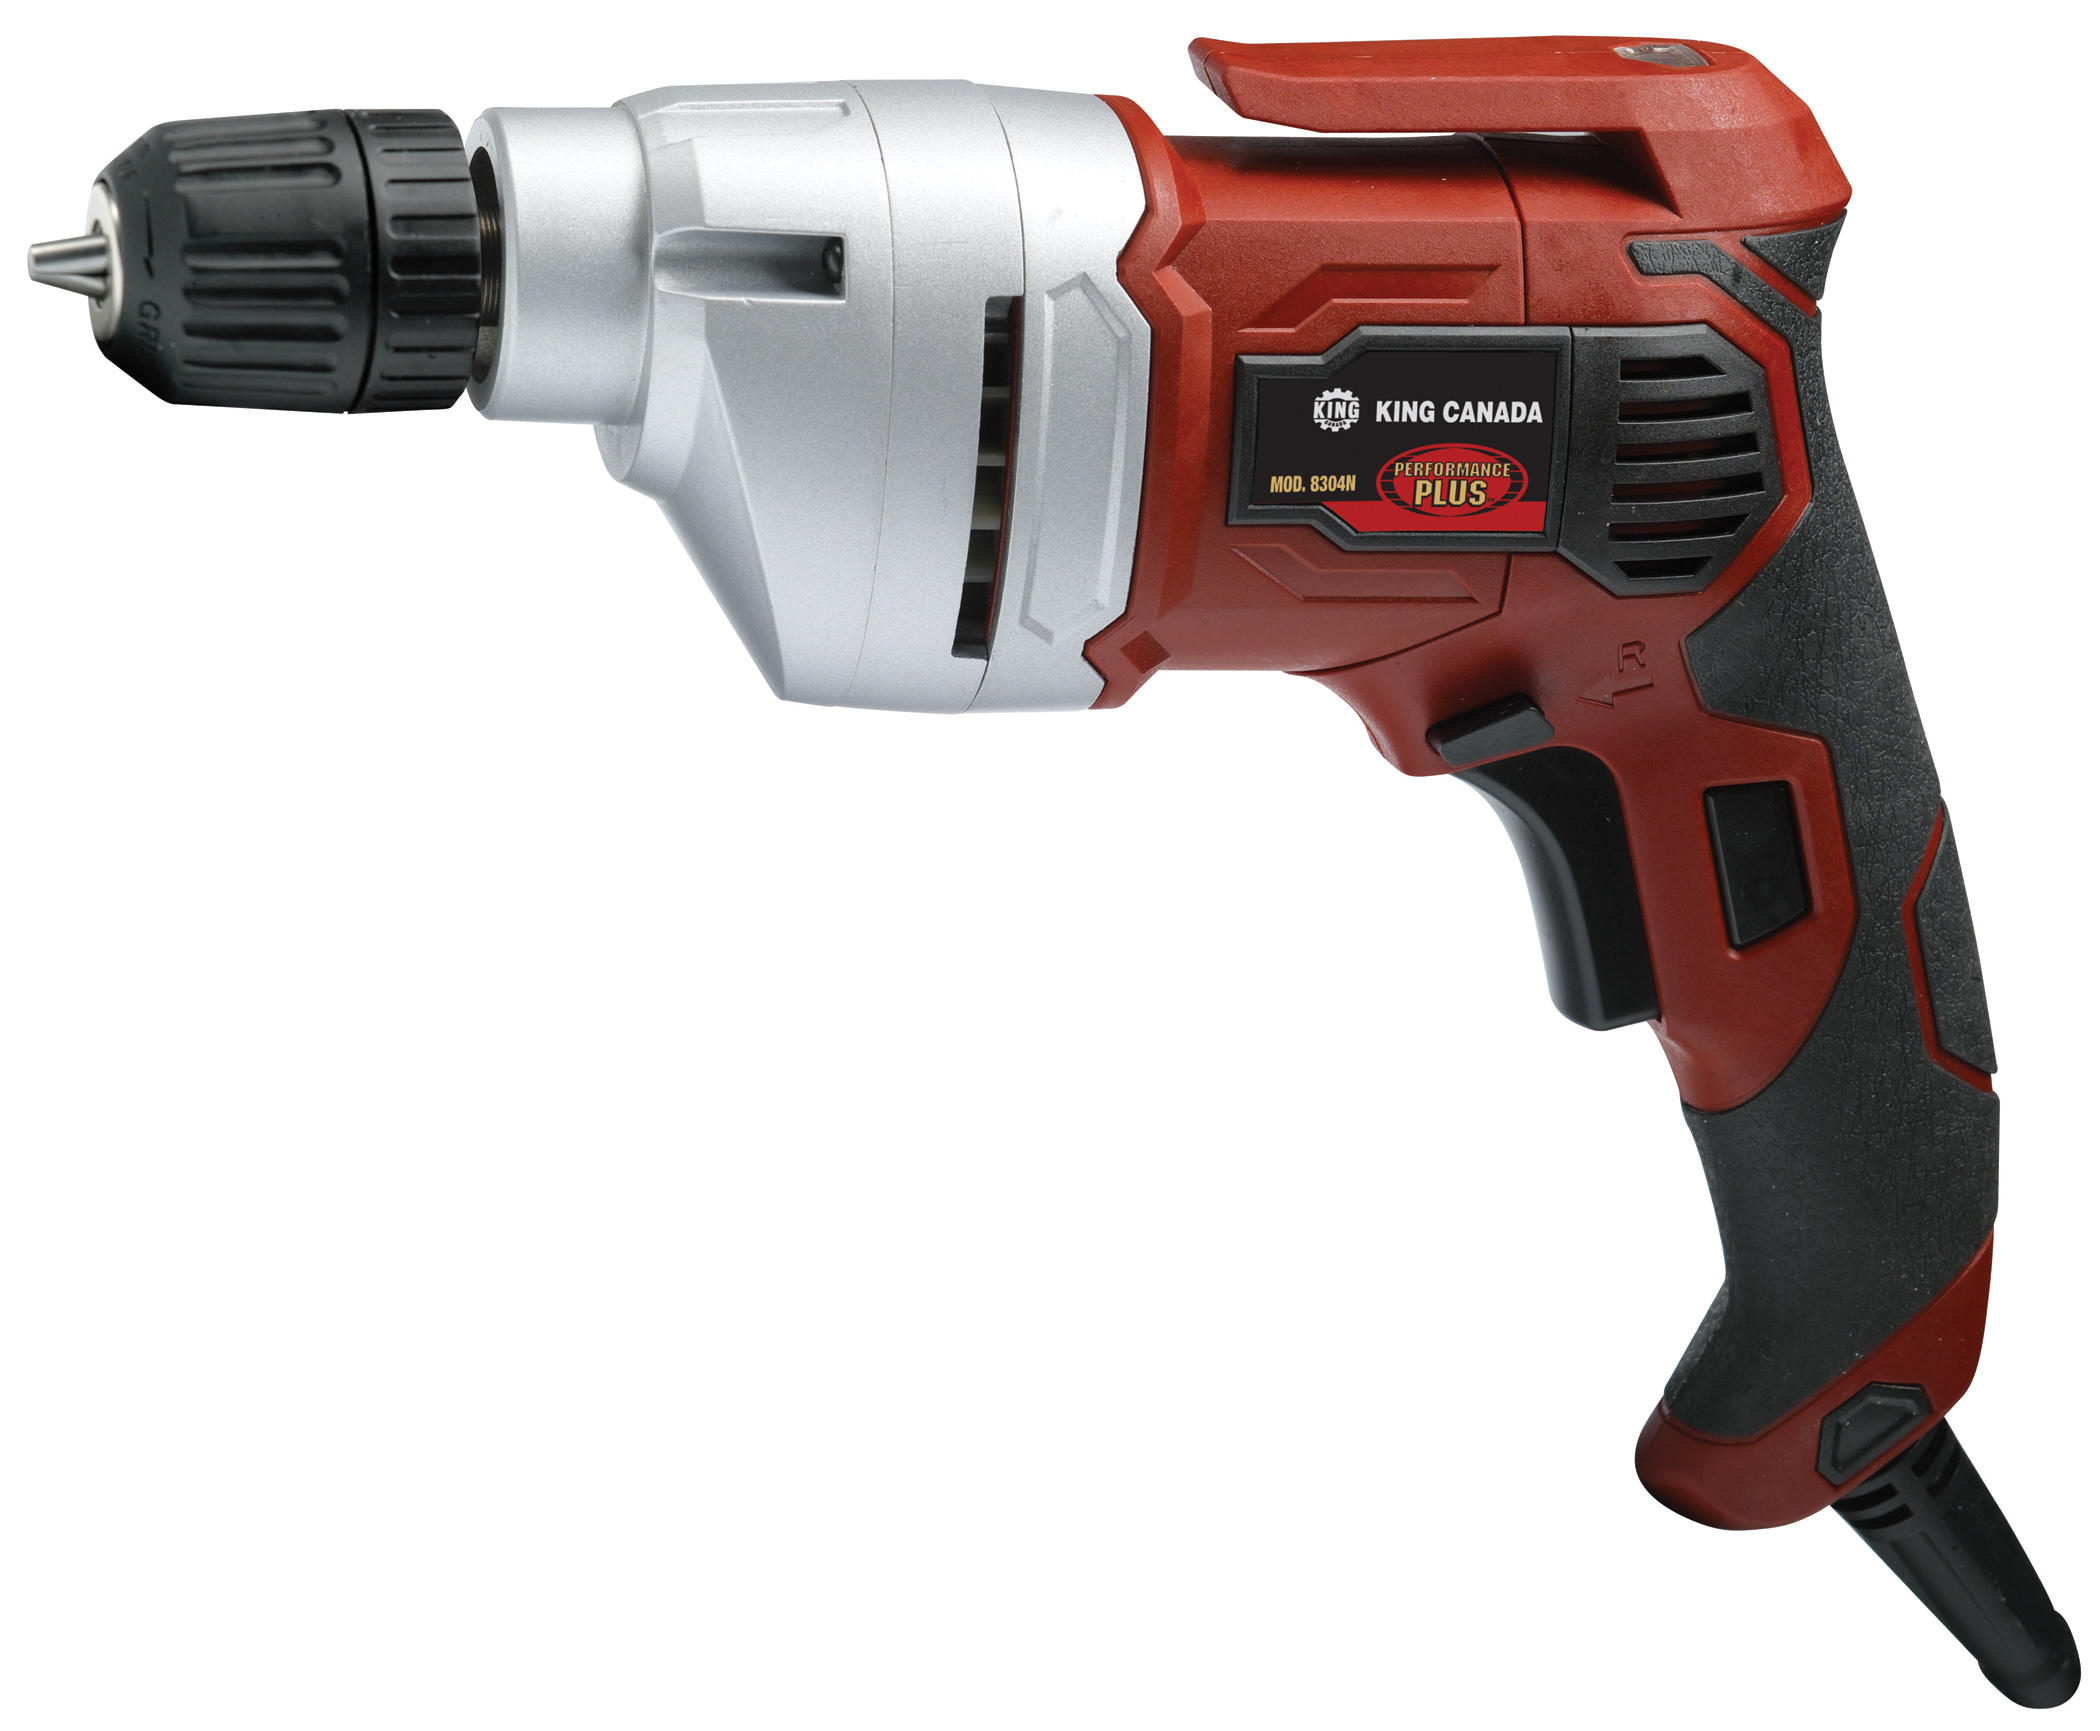 Performance Plus 8304N Electric Drill, 3/8, keyless chuck